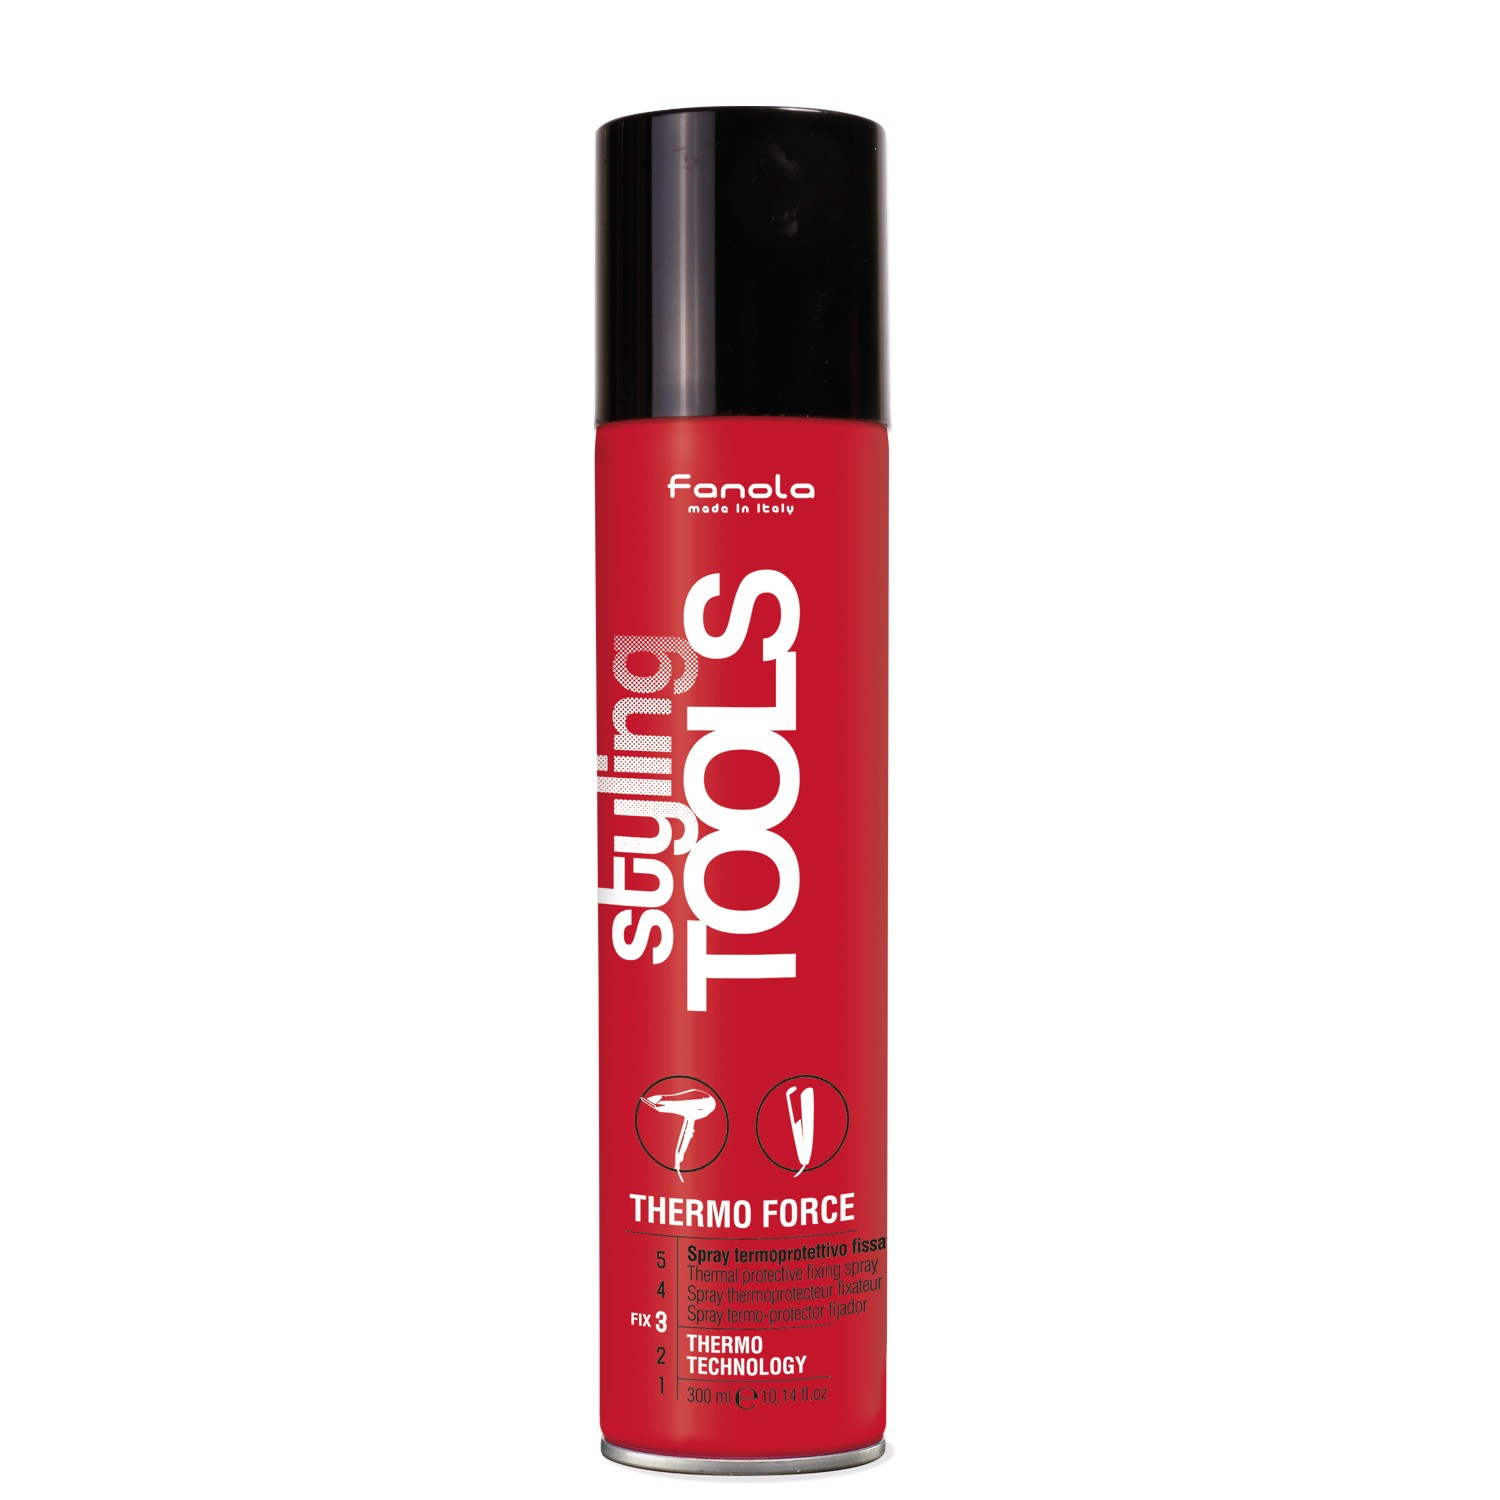 Fanola Styling Tools Thermo Force 300 ml